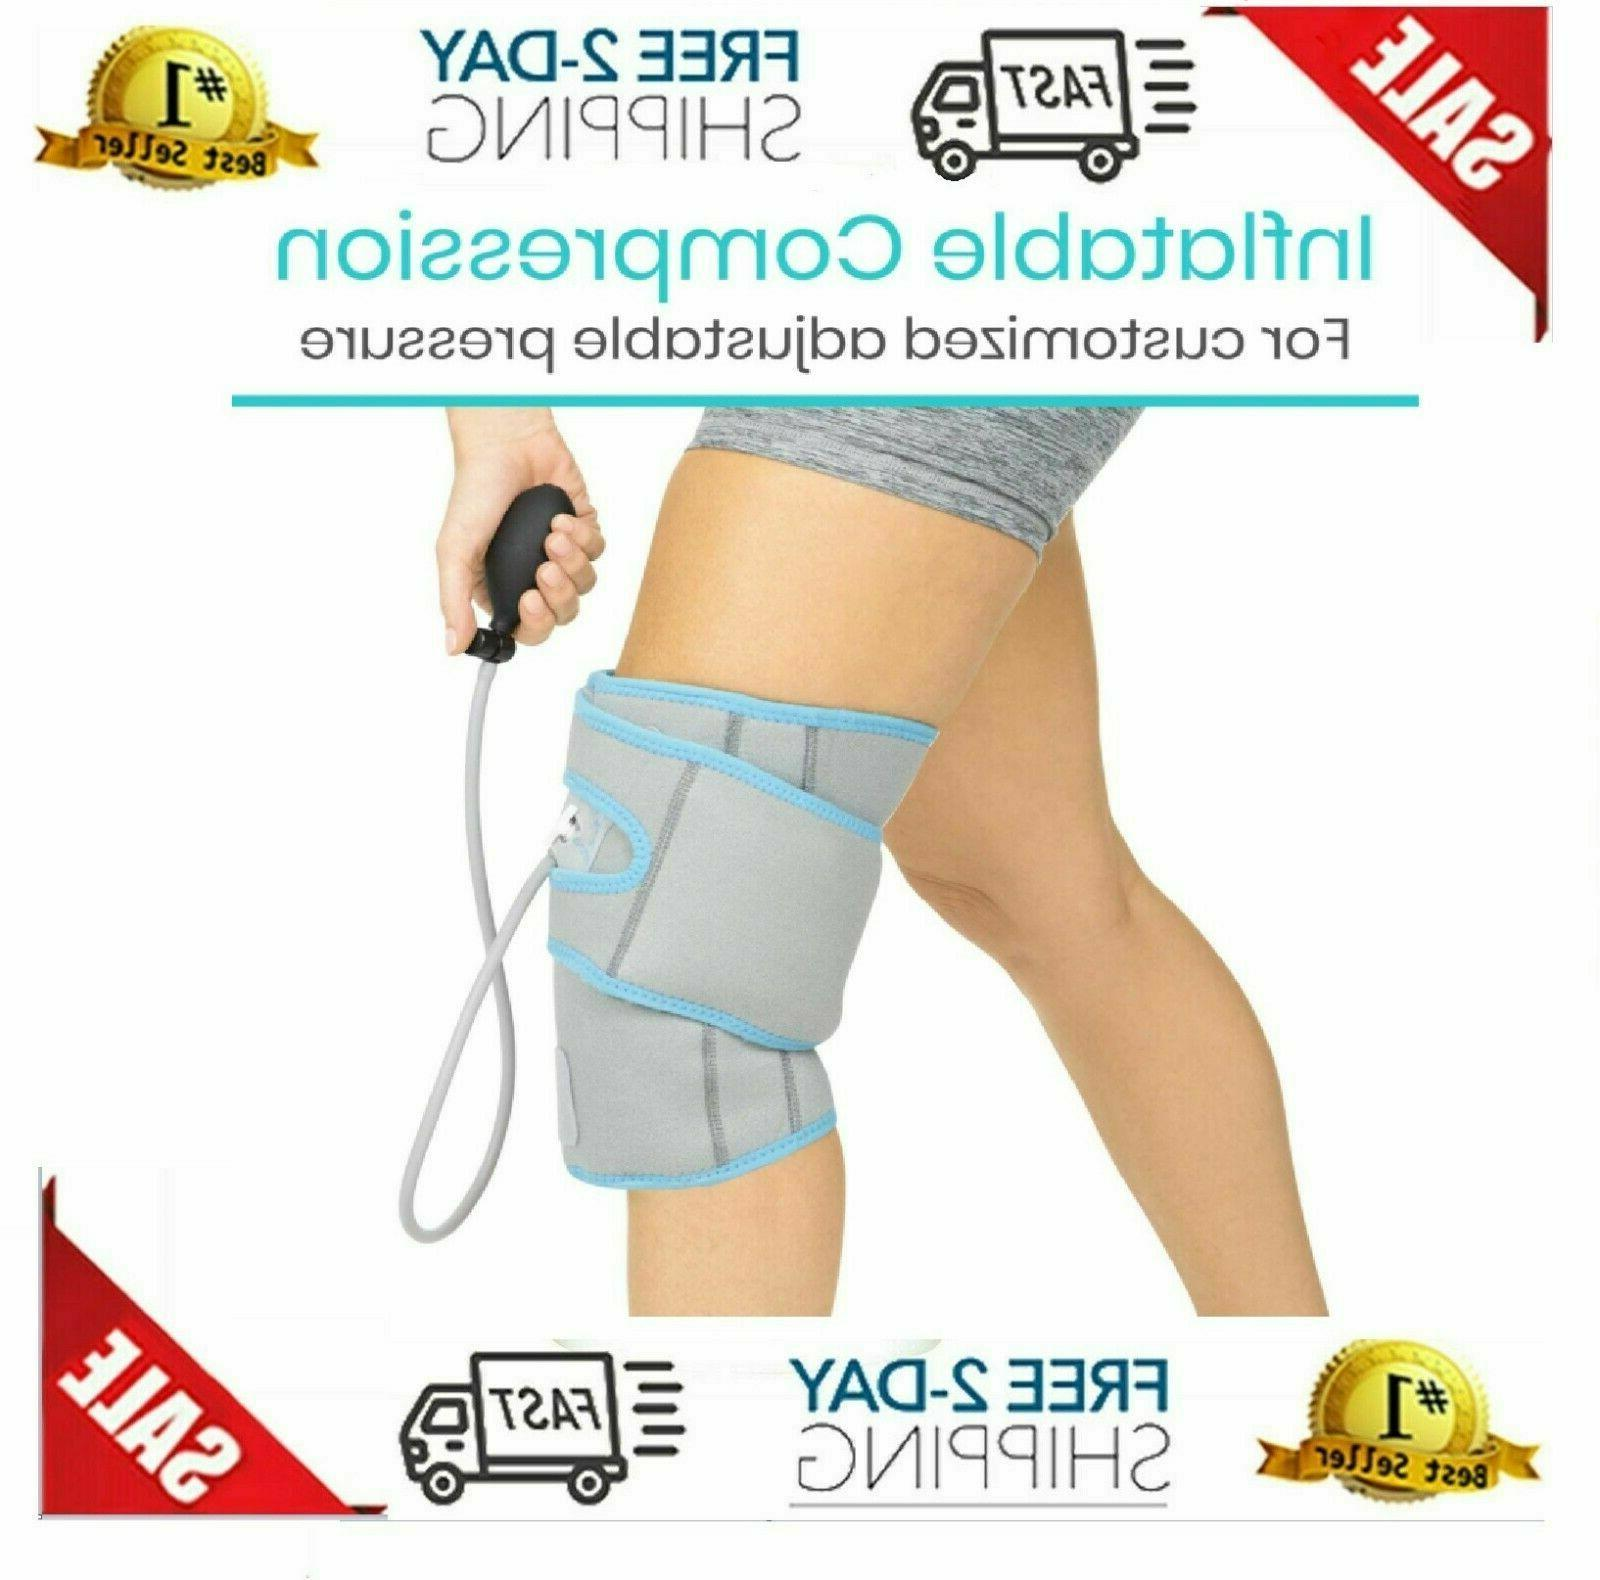 Vive Wrap - Reusable With - Hot/Cold Therapy